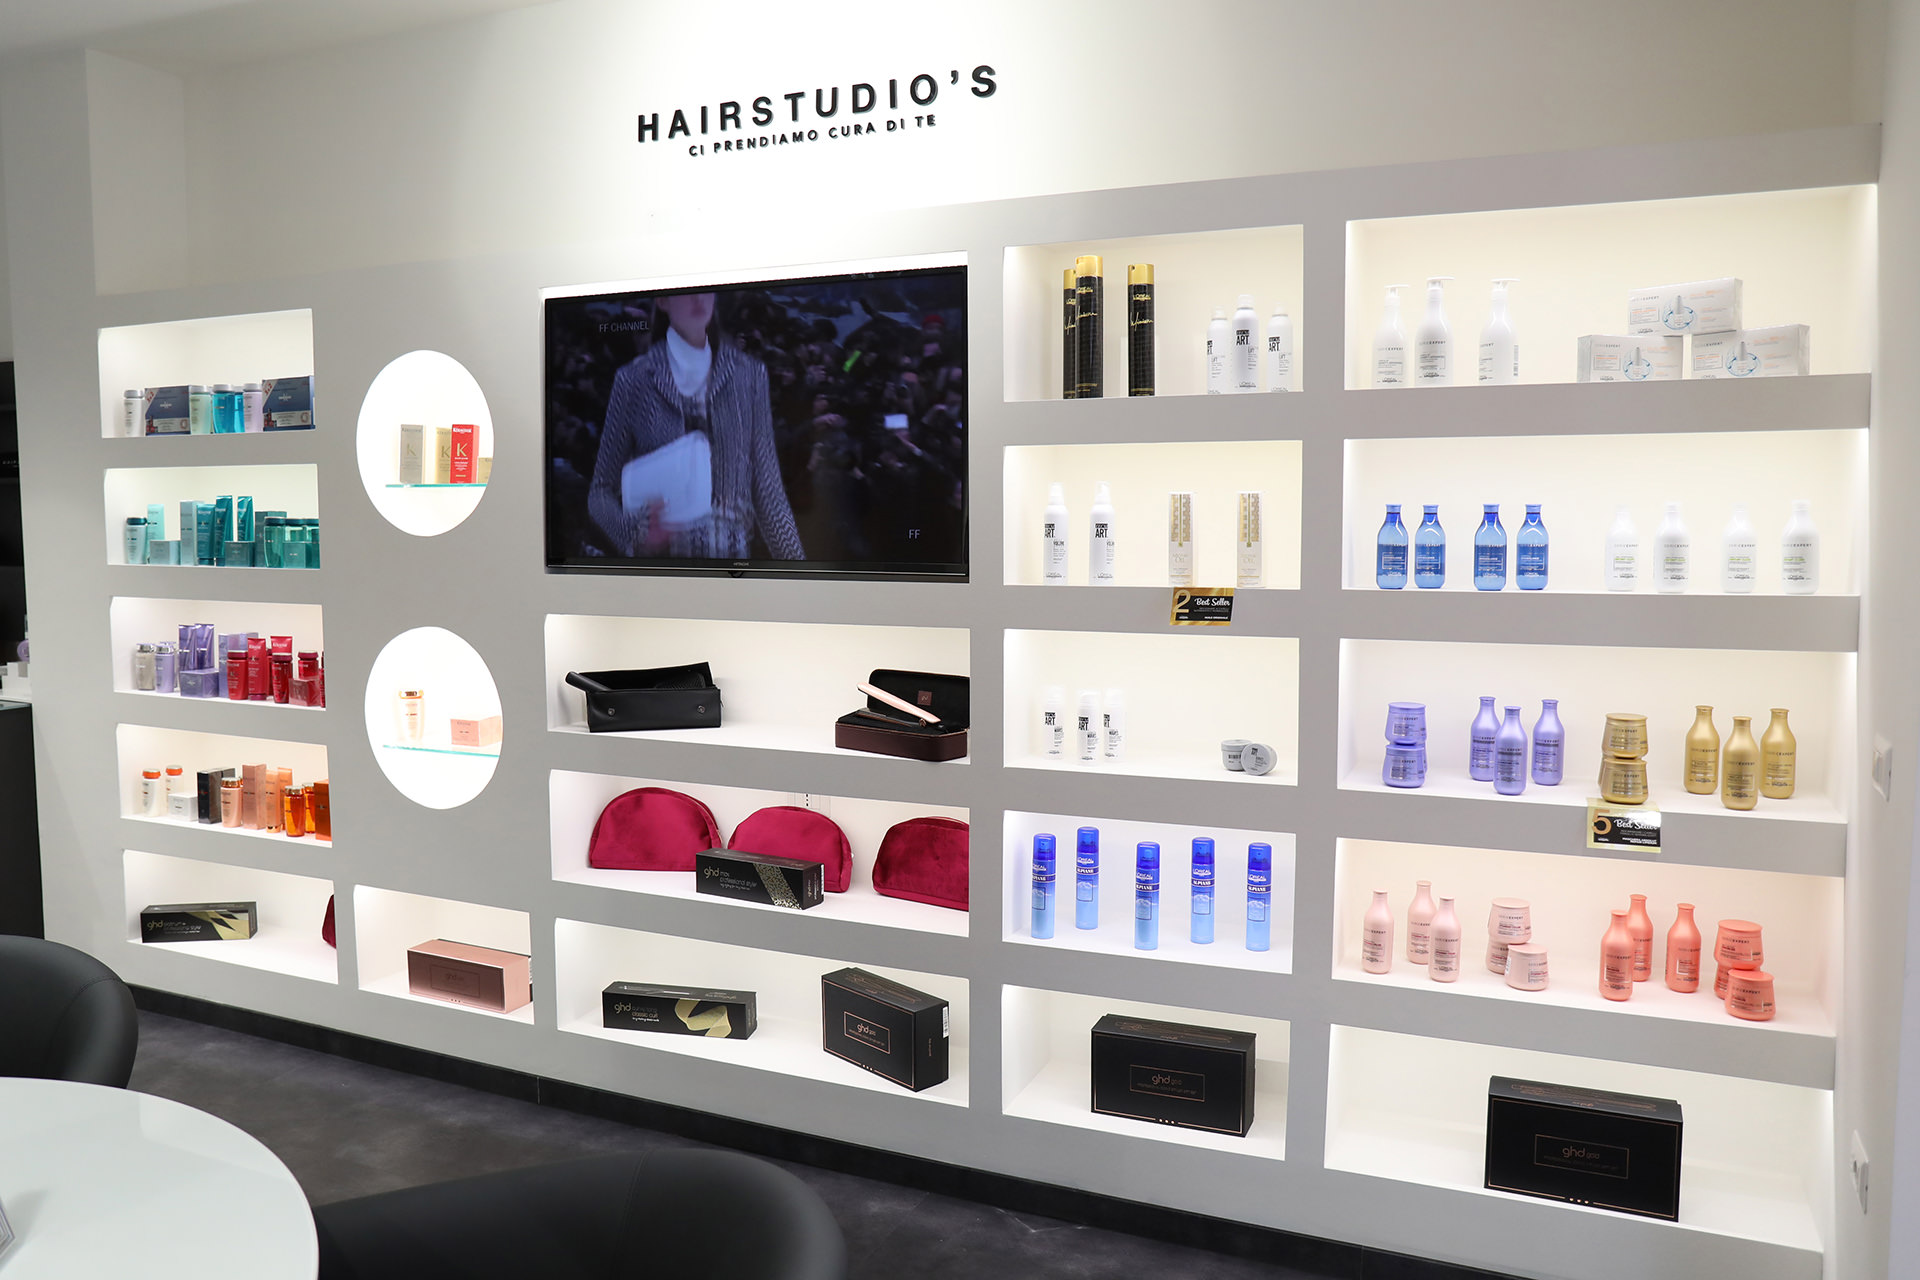 hairstudios-salon-concept-9